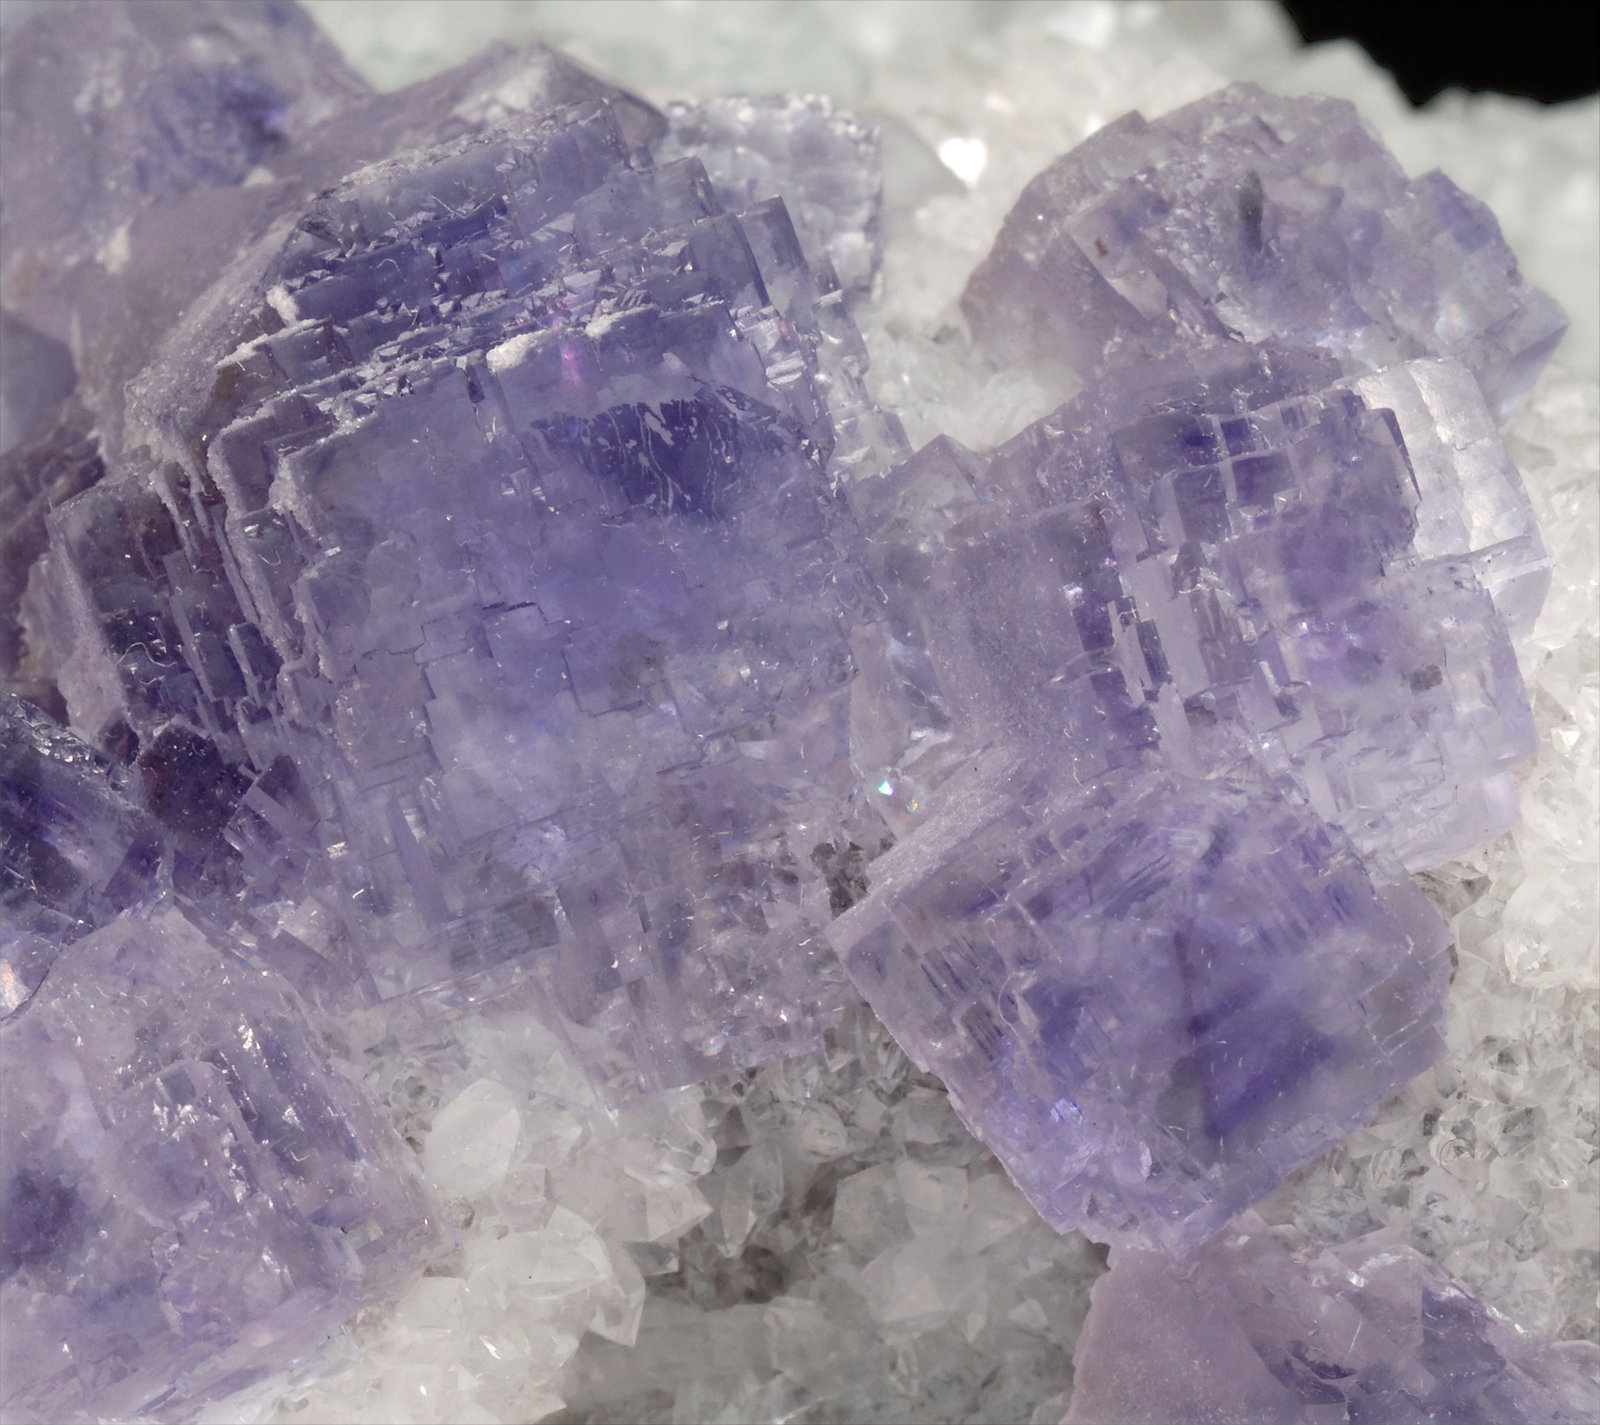 specimens/s_imagesT0/Fluorite-NZ47T0d.jpg